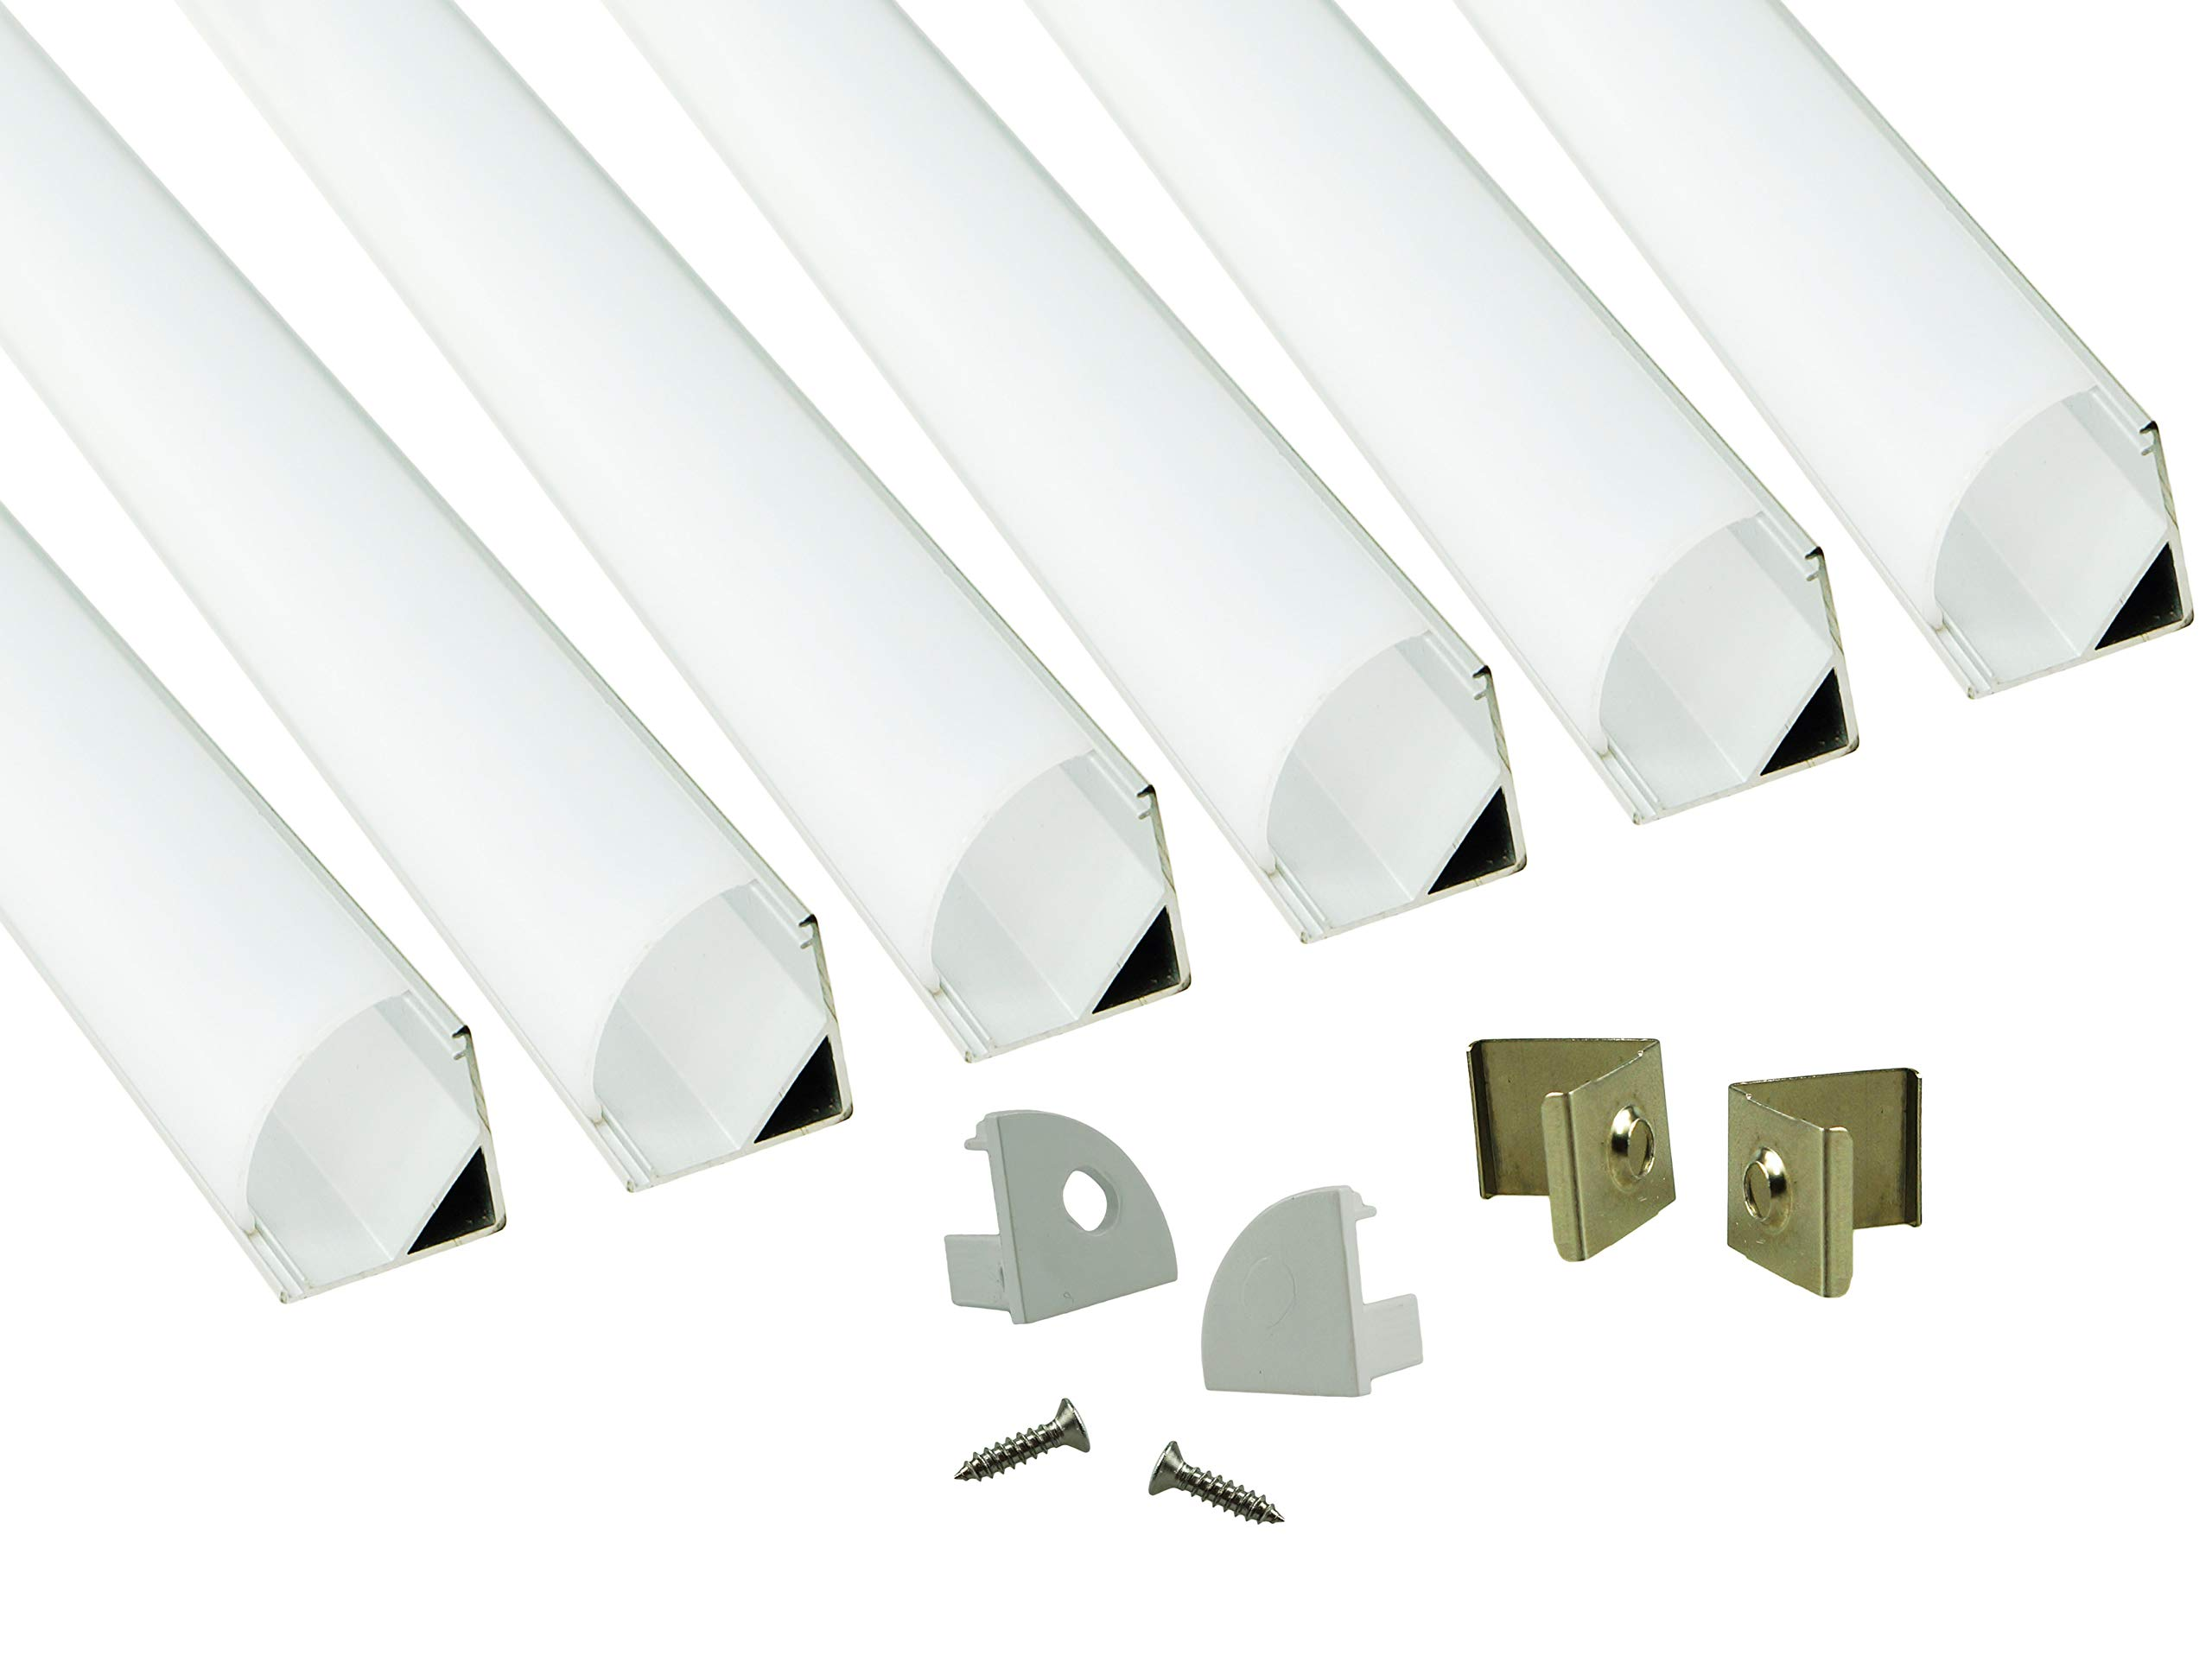 Muzata 6PACK 1M/3.3ft V-Shape LED Aluminum Channel System with PC Cover, Complete Mounting Accessories,Suit For 3528, 5050 & 5630 Strip Lights Installation